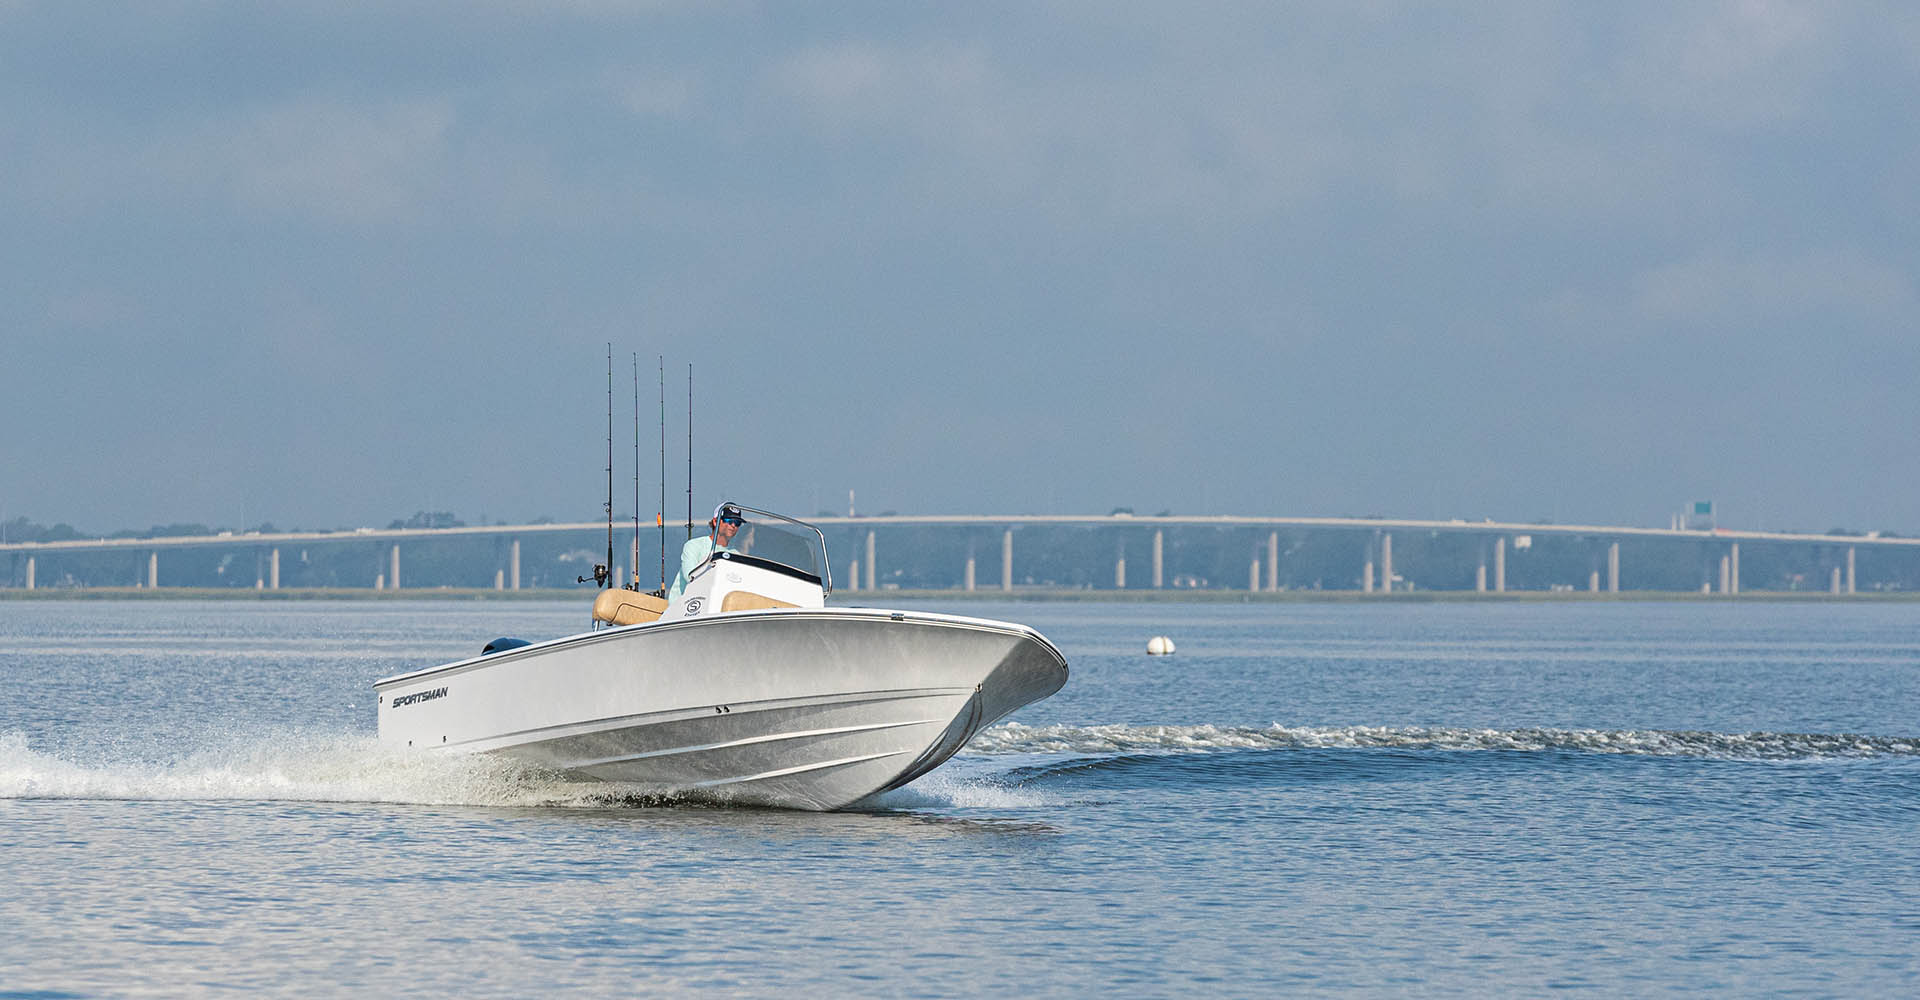 Main image of the Tournament 234 SBX Bay Boat.